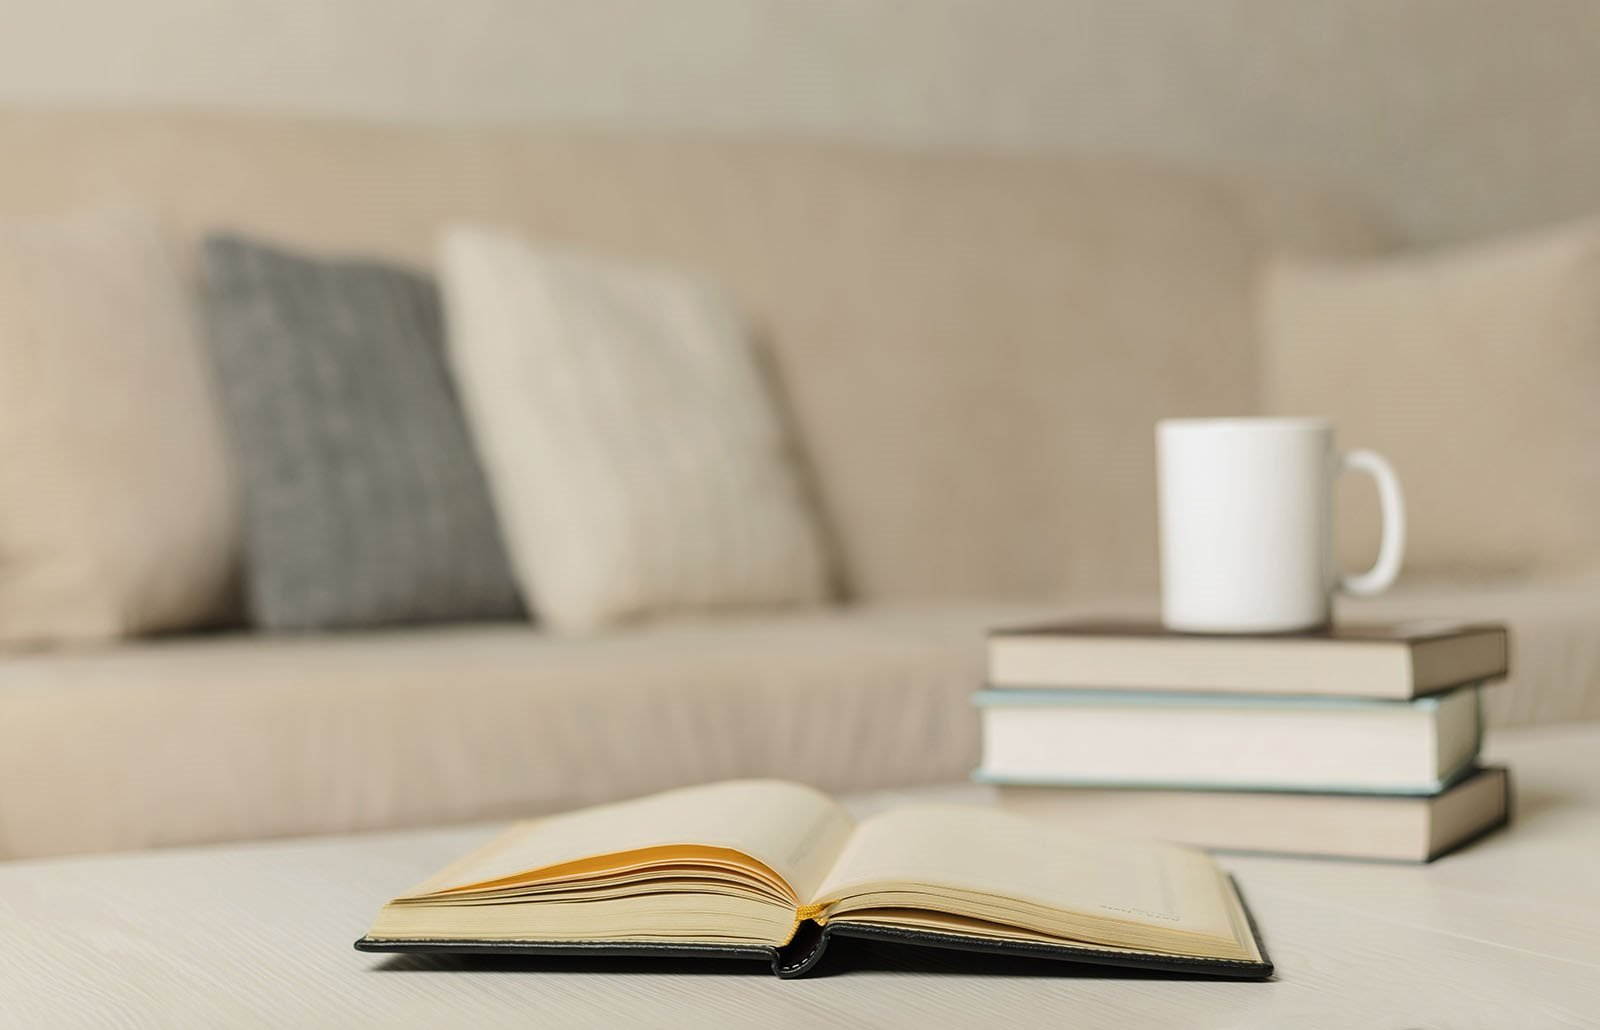 Stock image of couch and table